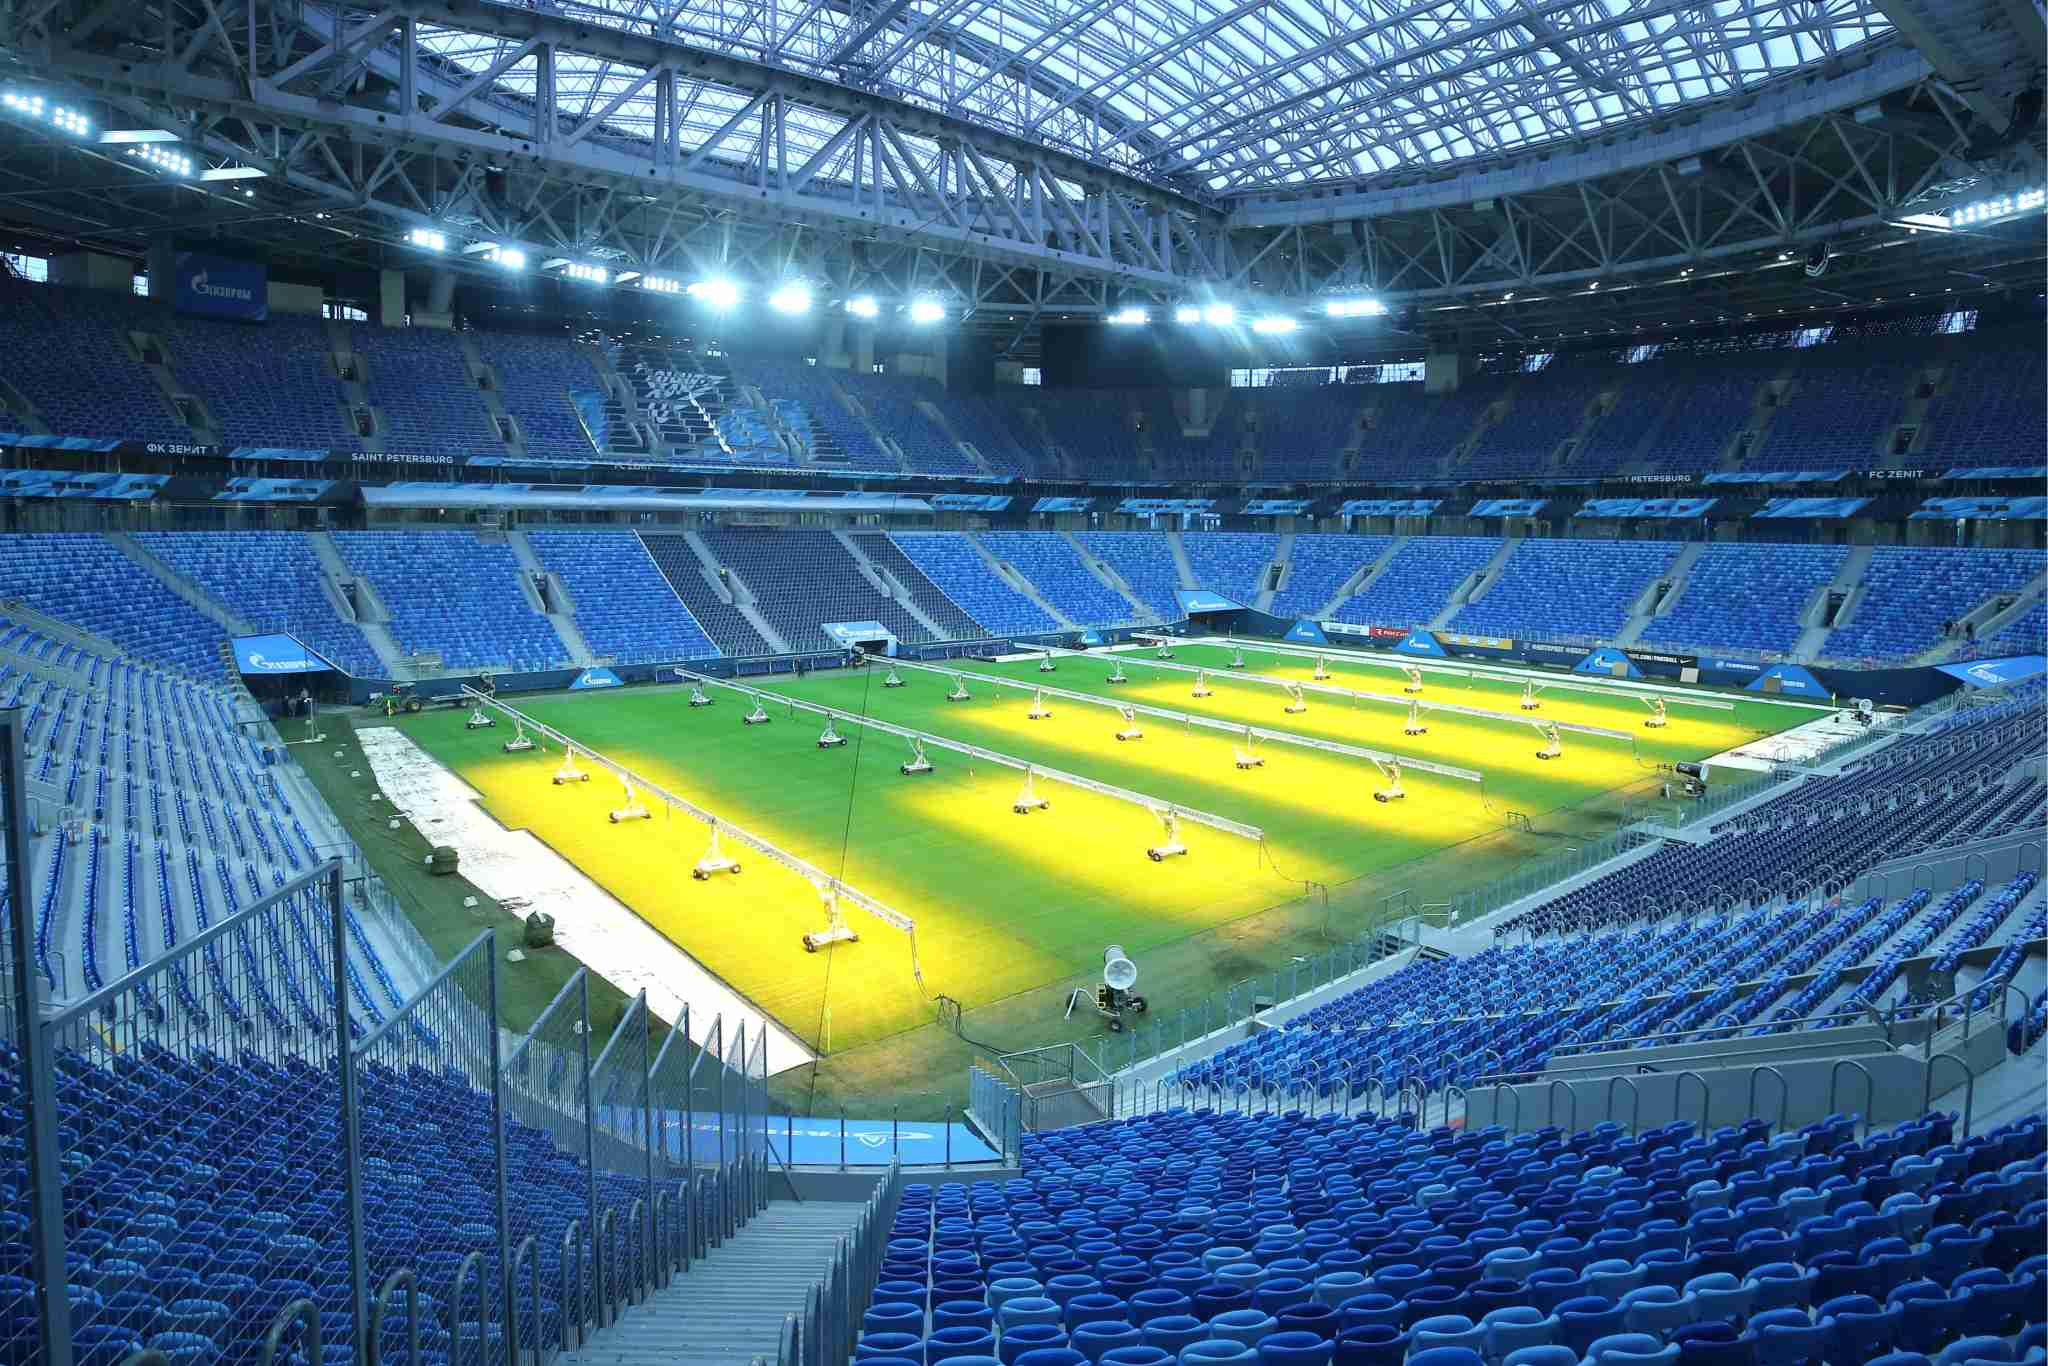 ST PETERSBURG, RUSSIA JANUARY 30, 2018: Lamps enhancing grass growth on the pitch of Saint Petersburg Stadium, a venue for 2018 FIFA World Cup matches. Peter Kovalev/TASS (Photo by Peter KovalevTASS via Getty Images)